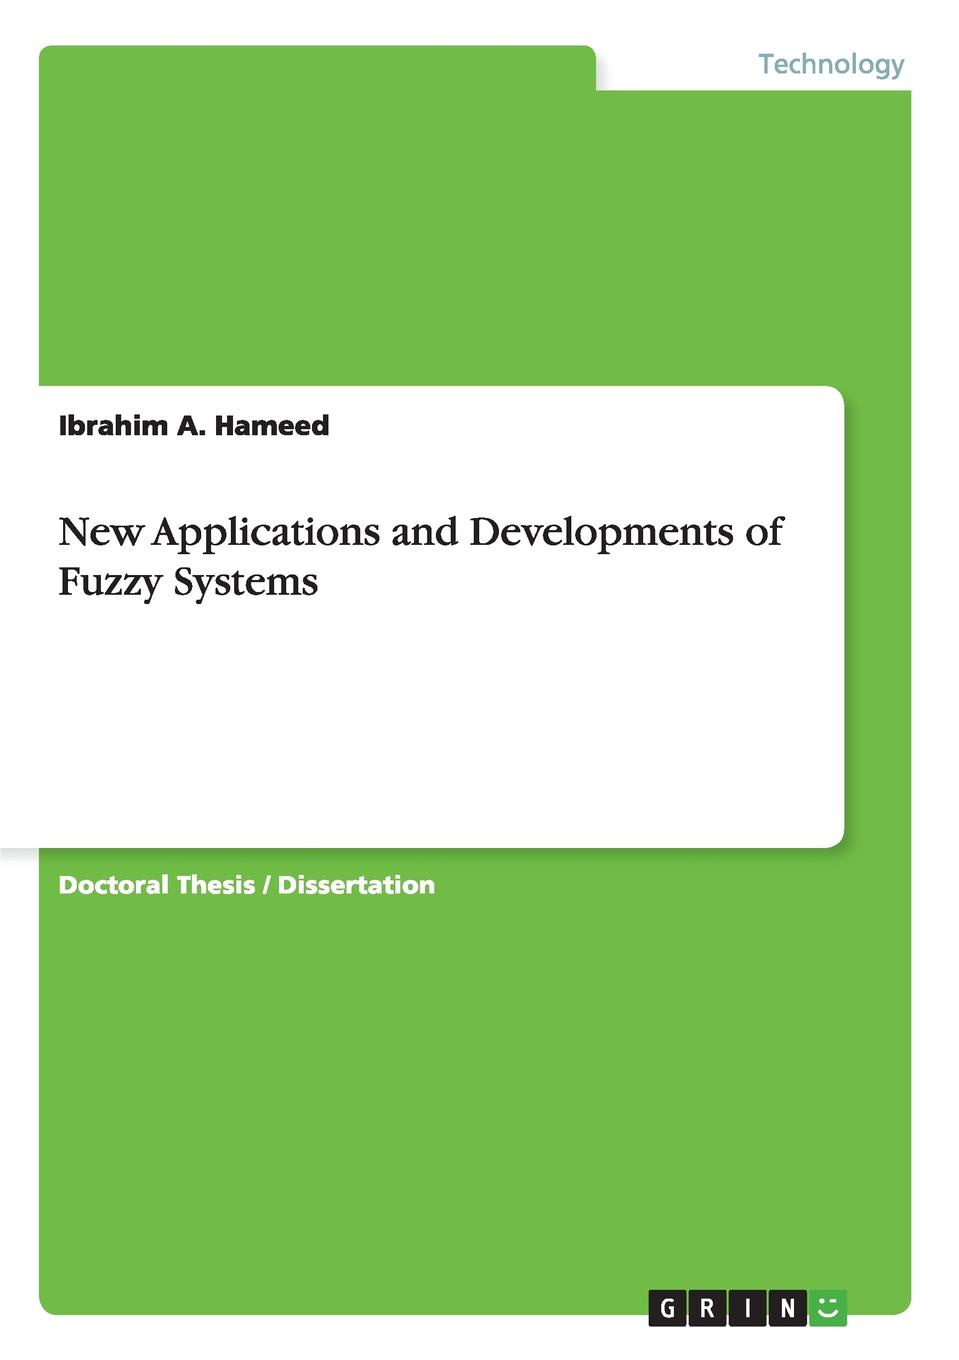 Ibrahim A. Hameed New Applications and Developments of Fuzzy Systems timothy ross j fuzzy logic with engineering applications